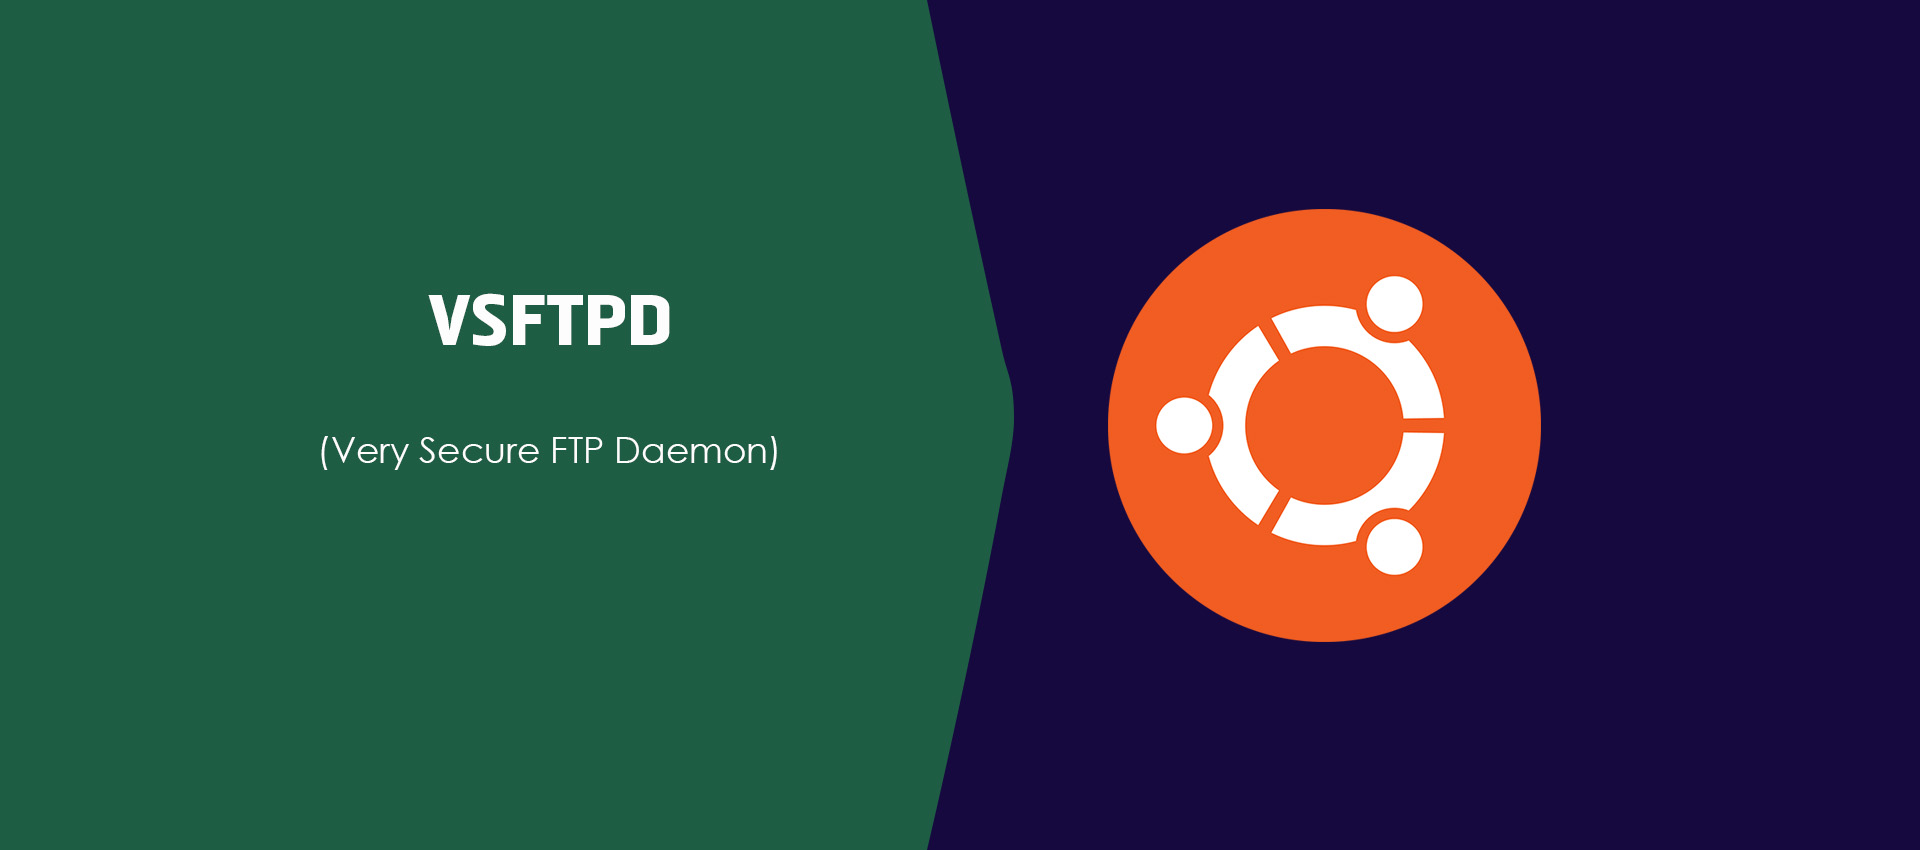 The Complete Guide To Install And Secure FTP Server On Ubuntu 20.04 LTS Using VSFTPD